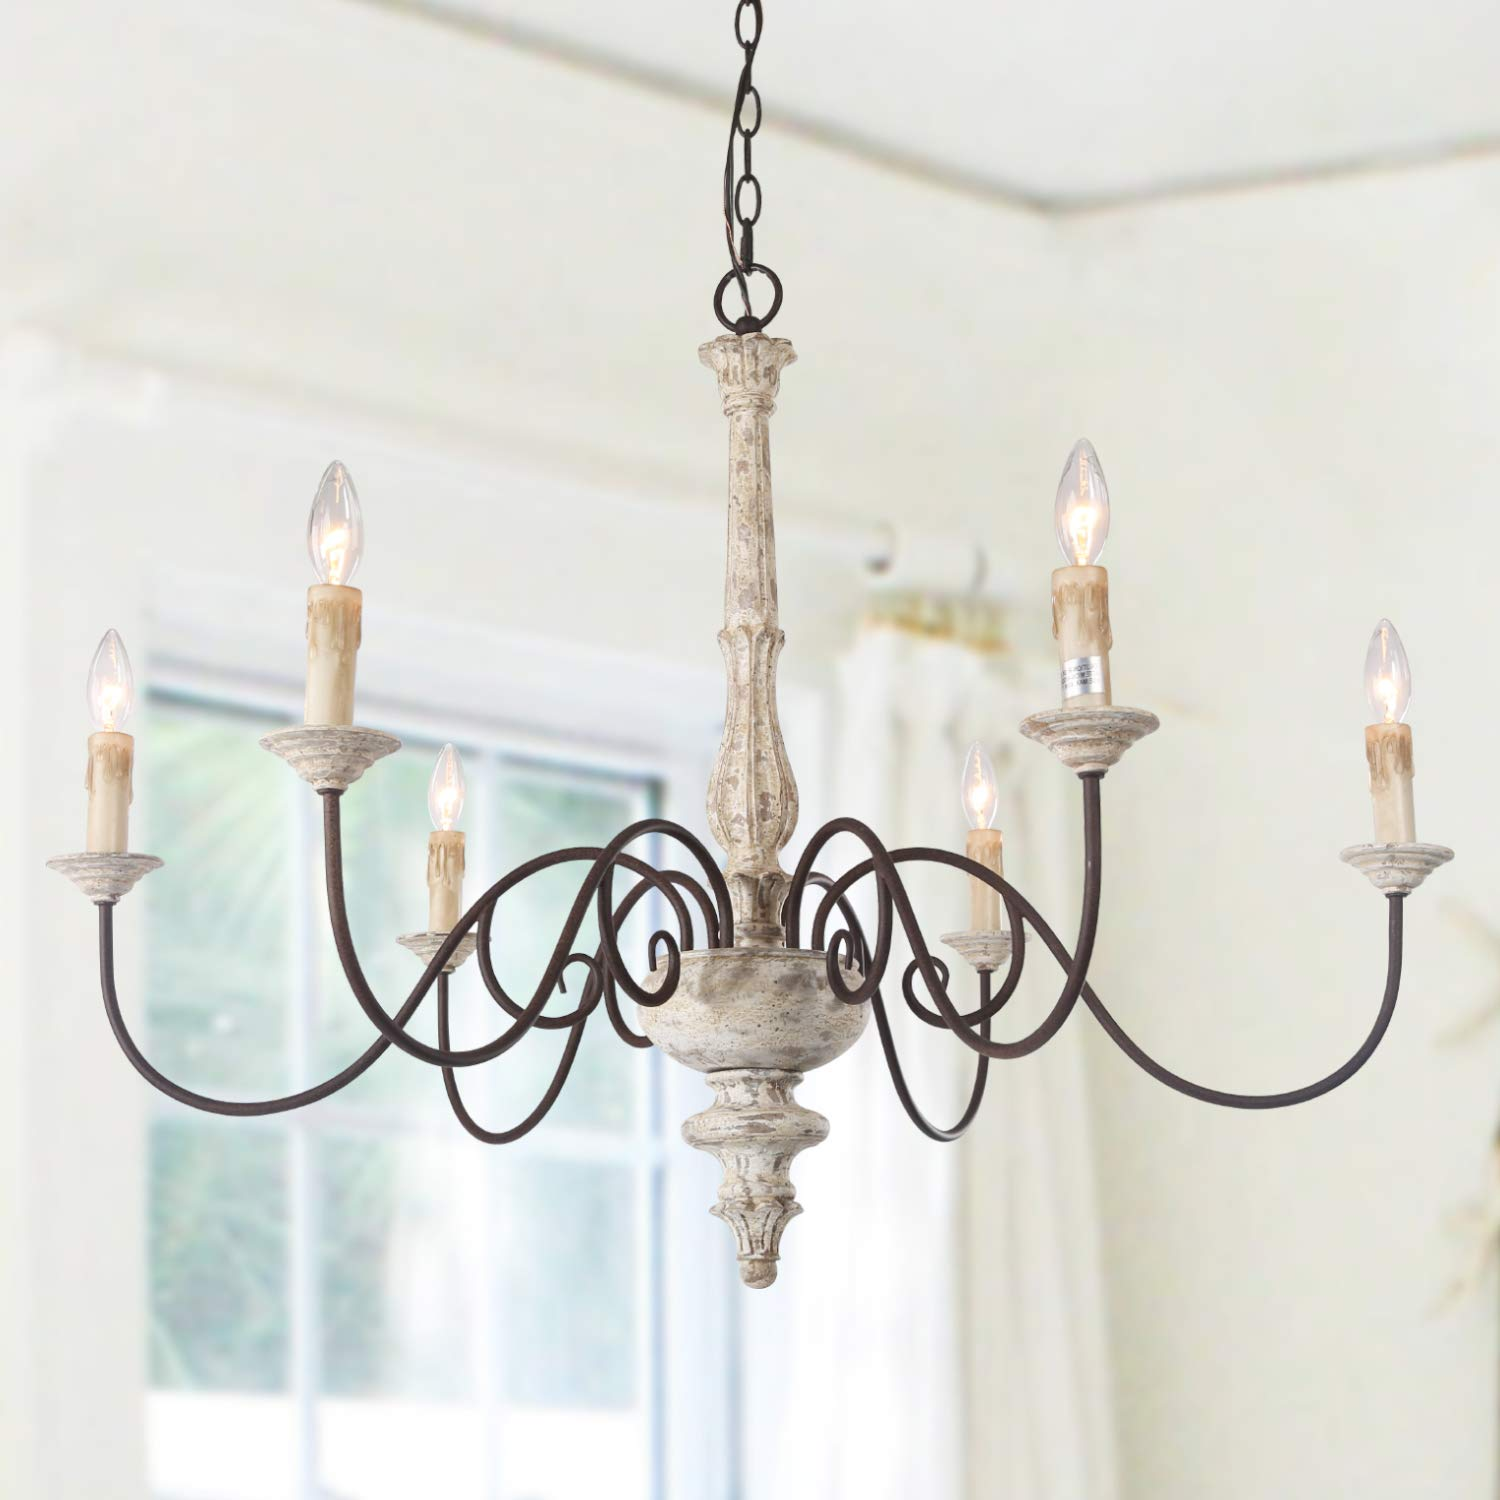 Laluz 6 light french country chandelier distressed lighting for dining rooms 28h x 37l amazon com